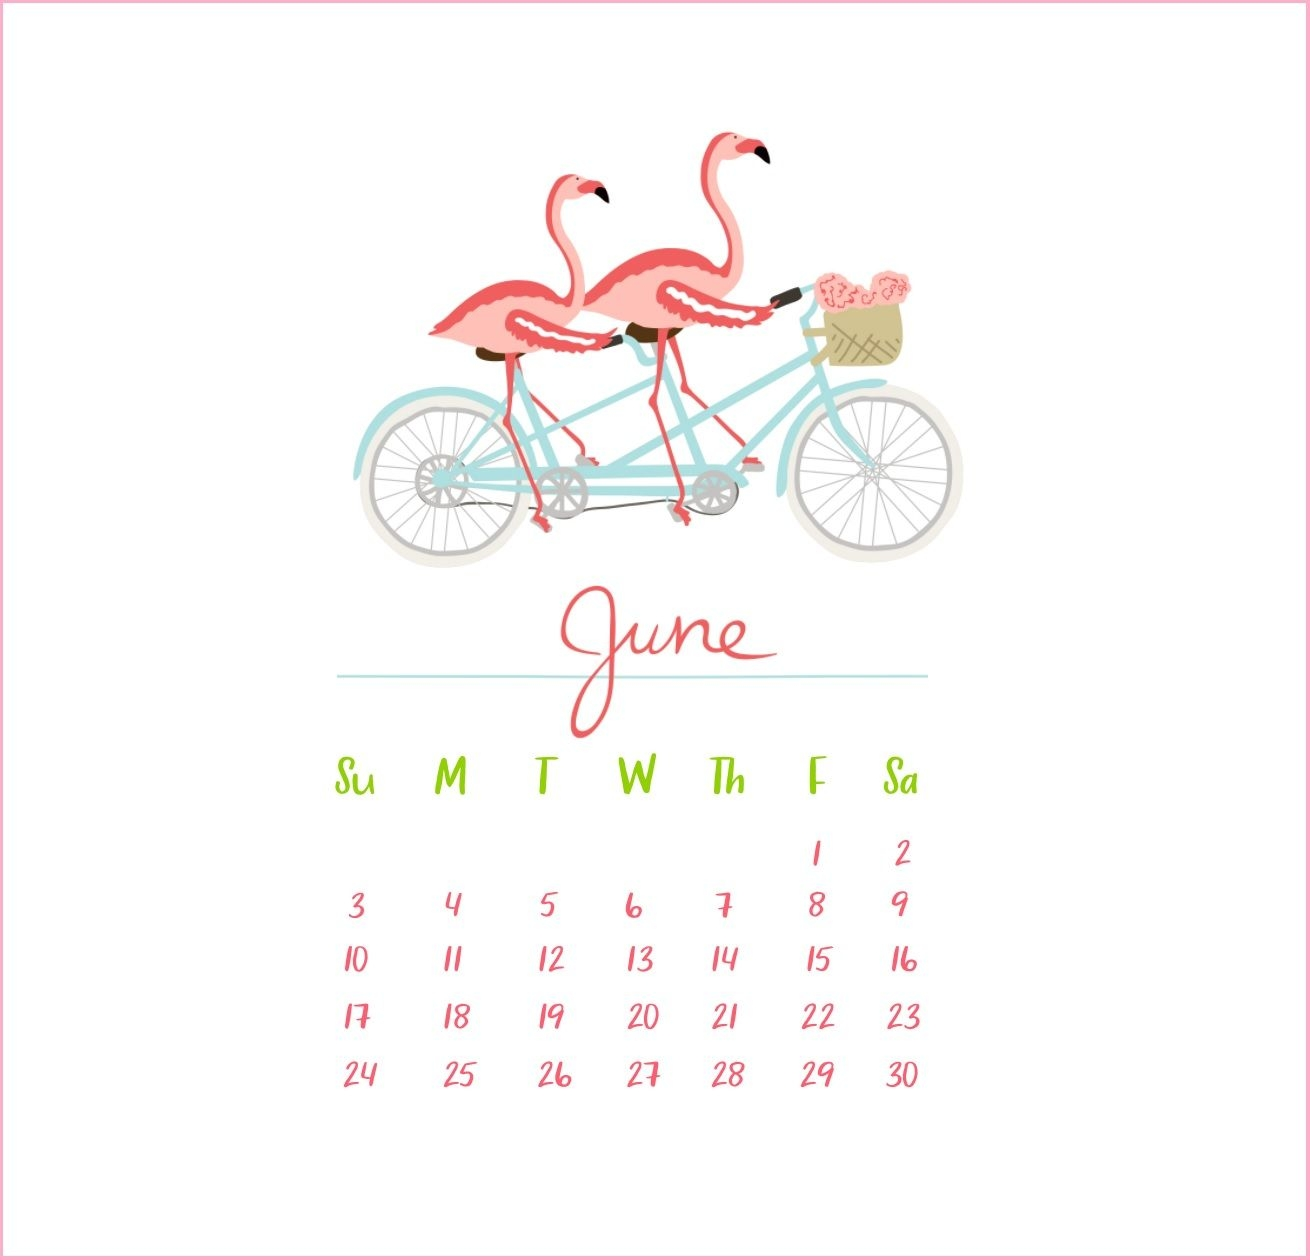 june 2019 calendar wallpapers wallpaper cave::June 2019 iPhone Calendar Wallpaper